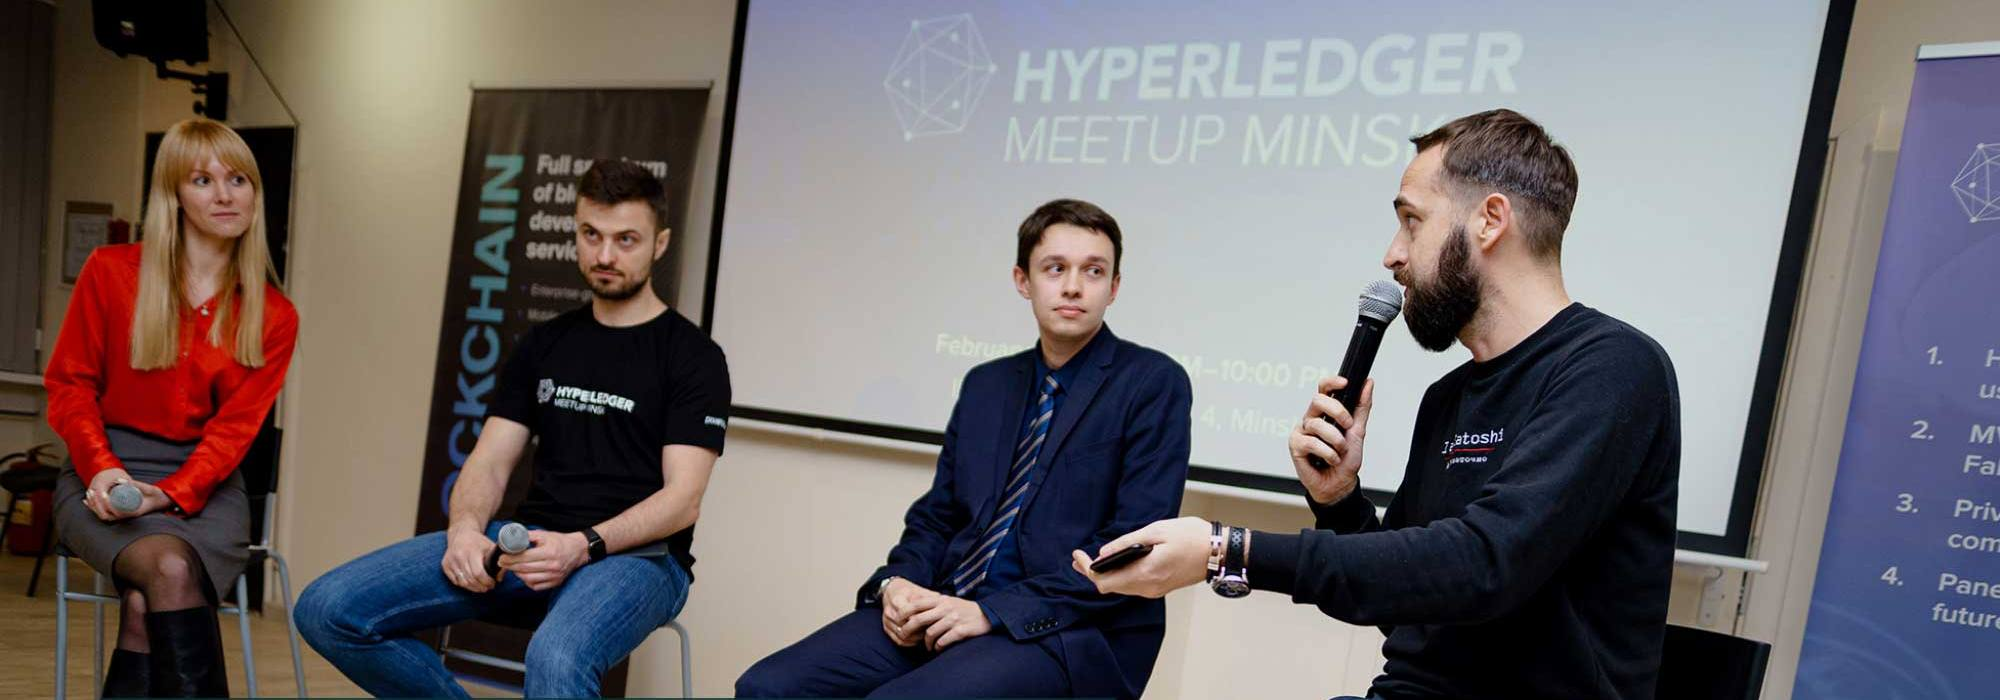 hyperledger-meetup-2020-belarus-1-1